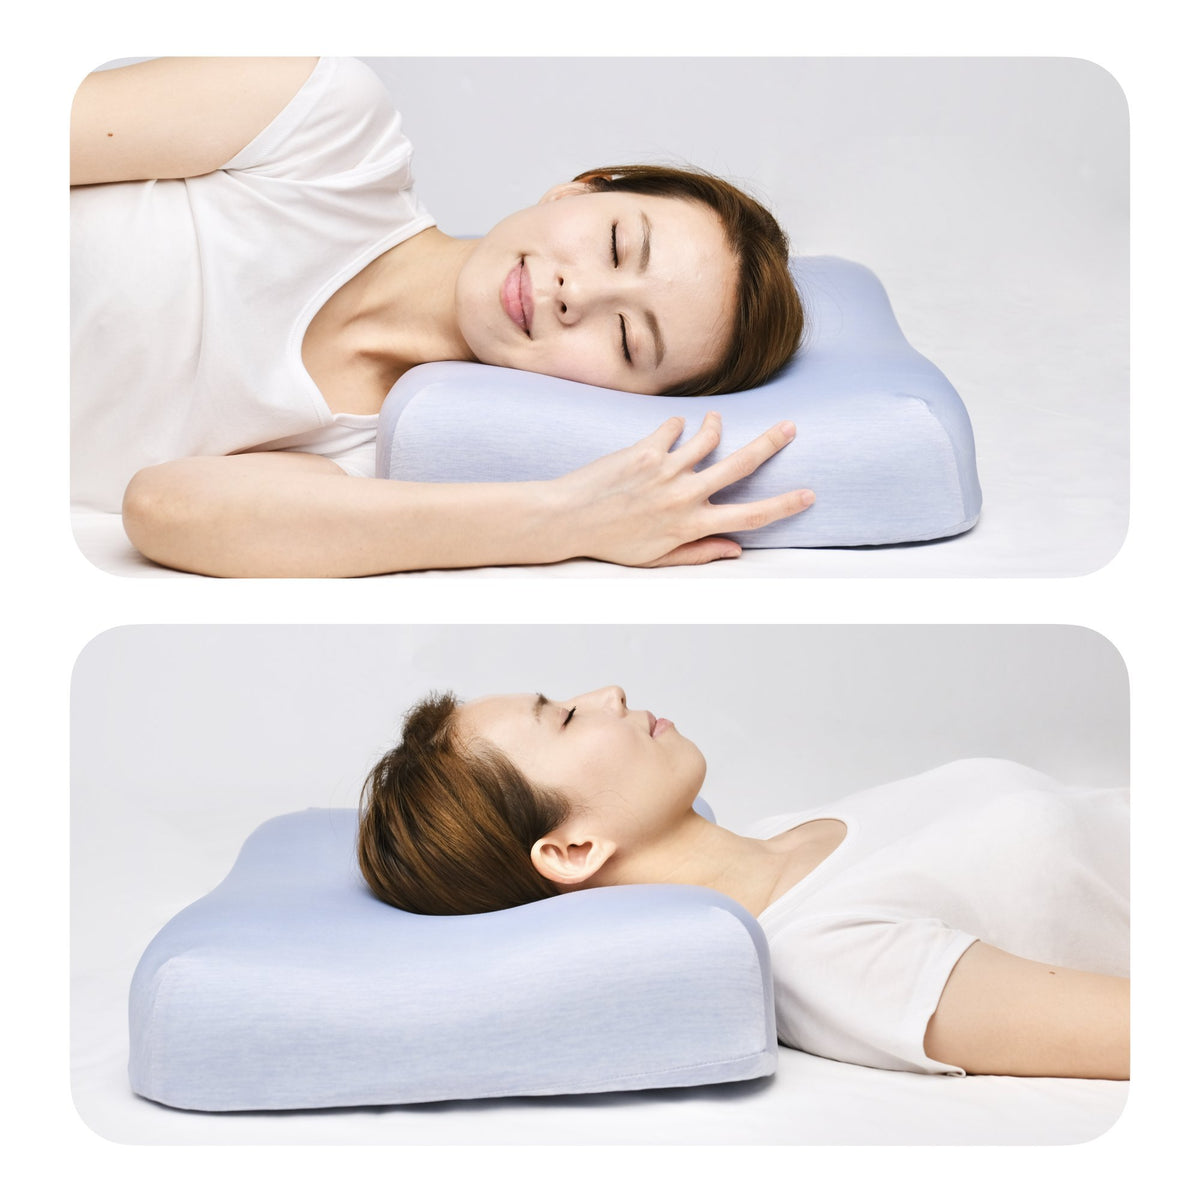 Cooling Ergonomic Contour Pillow Sleeping - Cushion Lab